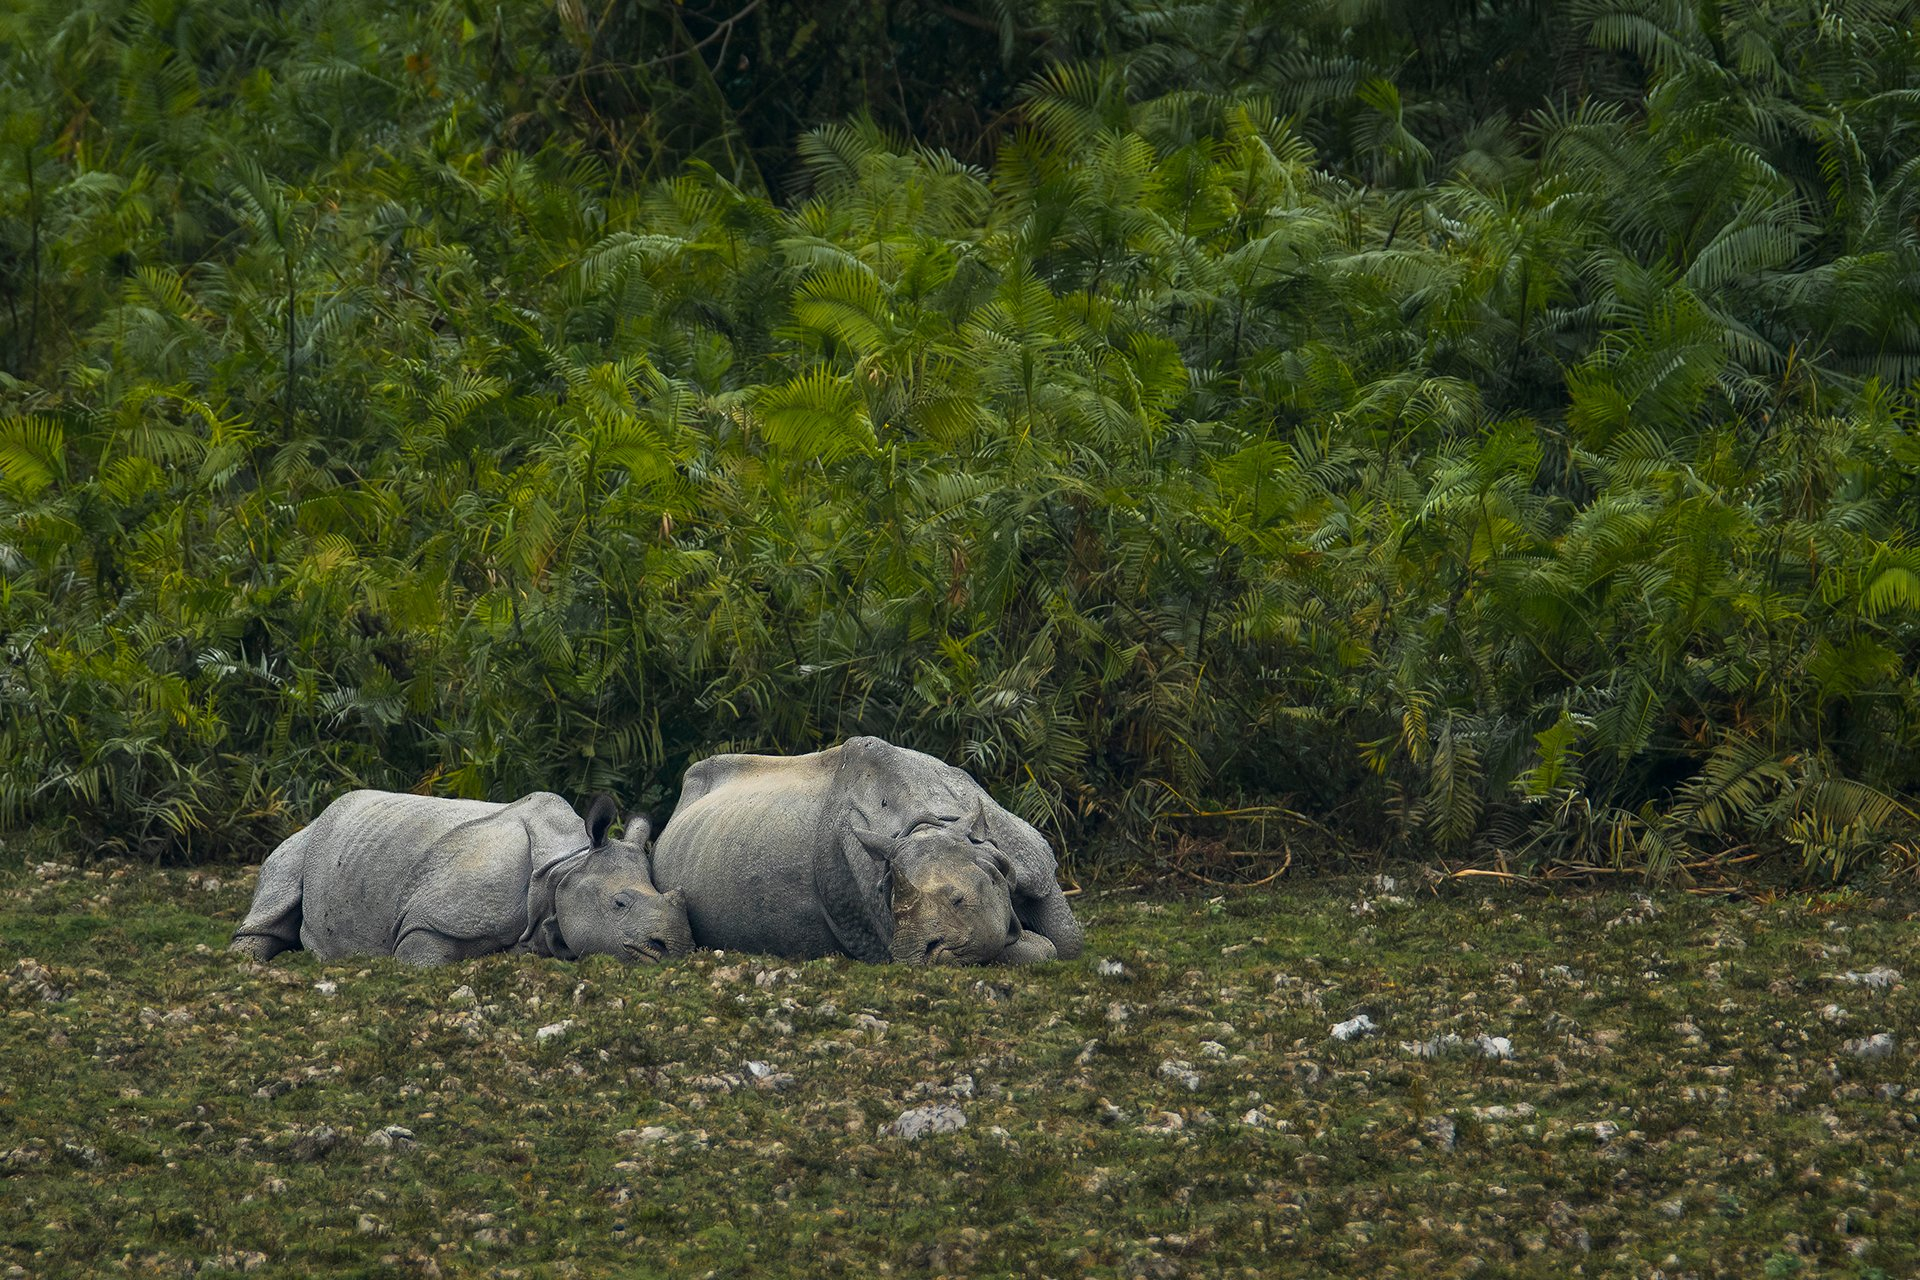 Greater One Horned Rhinoceros or Indian Rhinoceros mother is sleeping with her calf in Kaziranga National Park 2020